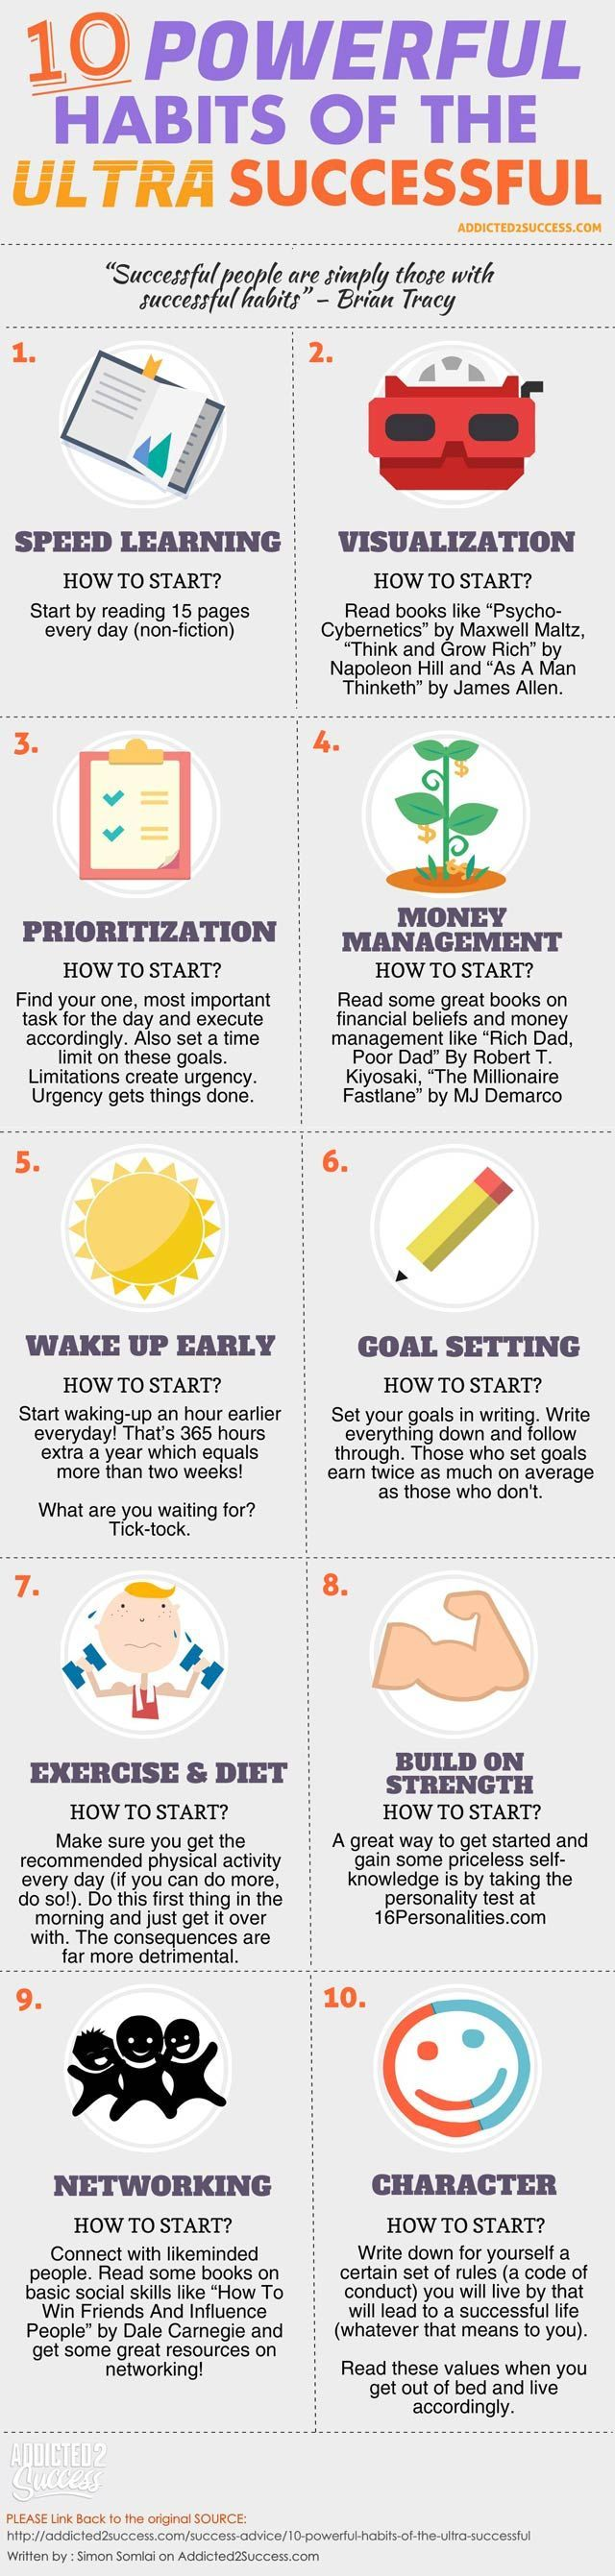 10 Powerful Habits of the ULTRA Successful from Addicted2success.com